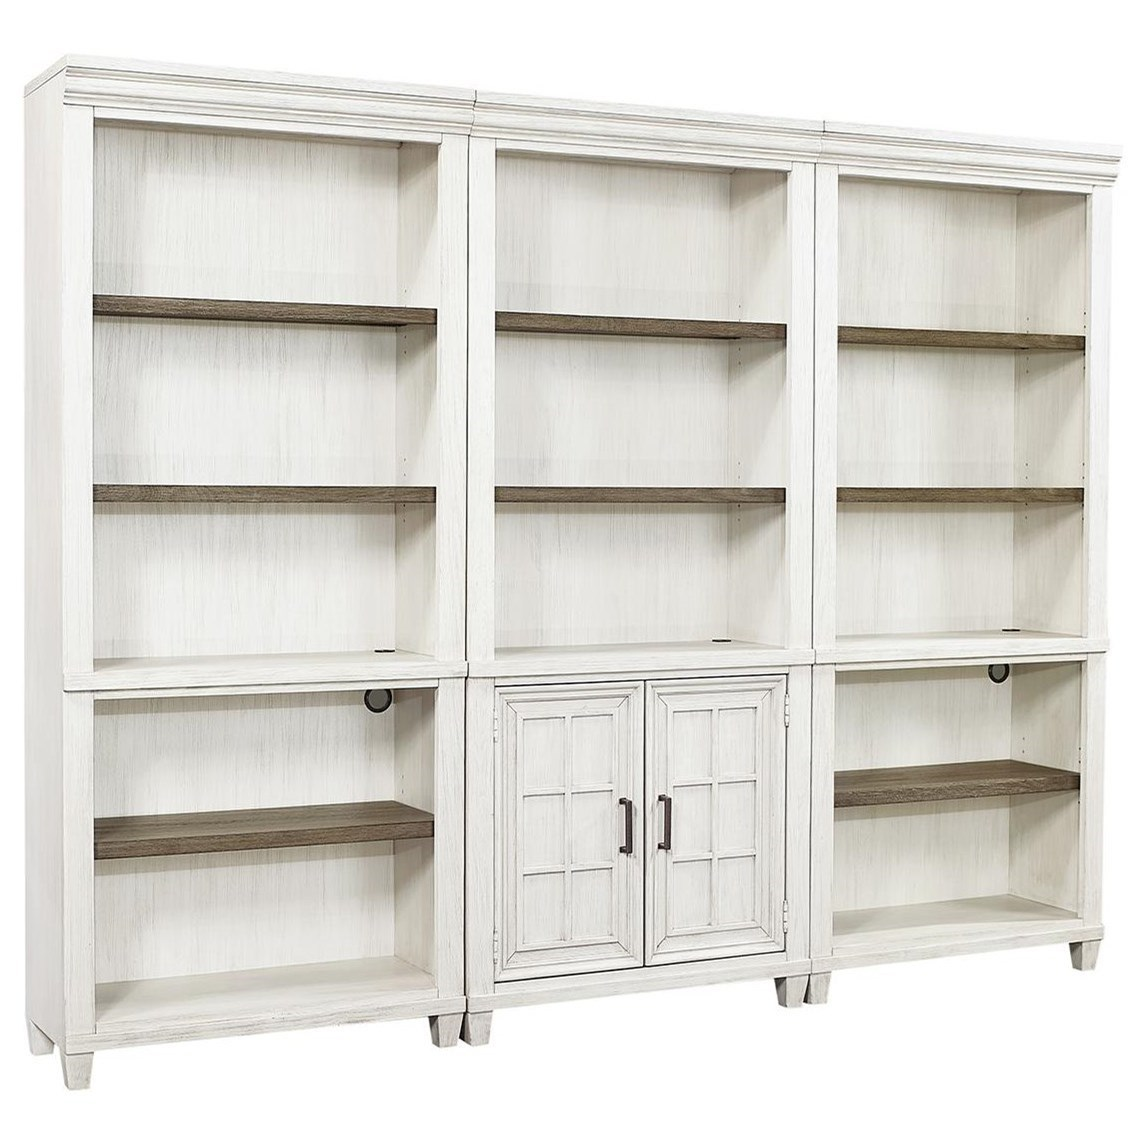 Caraway Bookcase Combination by Aspenhome at Baer's Furniture